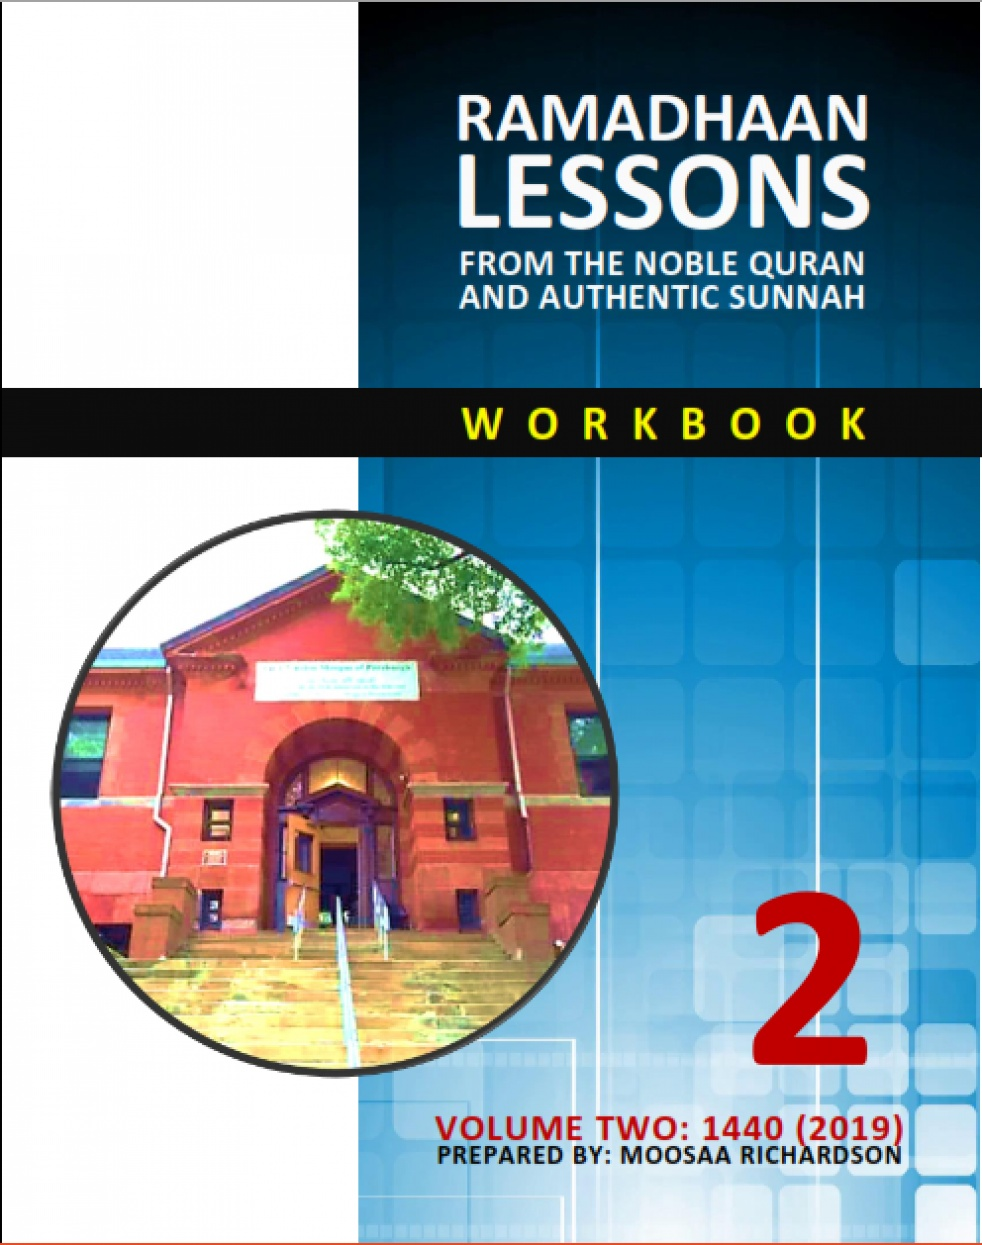 1MM's 1440 Ramadhaan Lessons (2019) - Cover Image